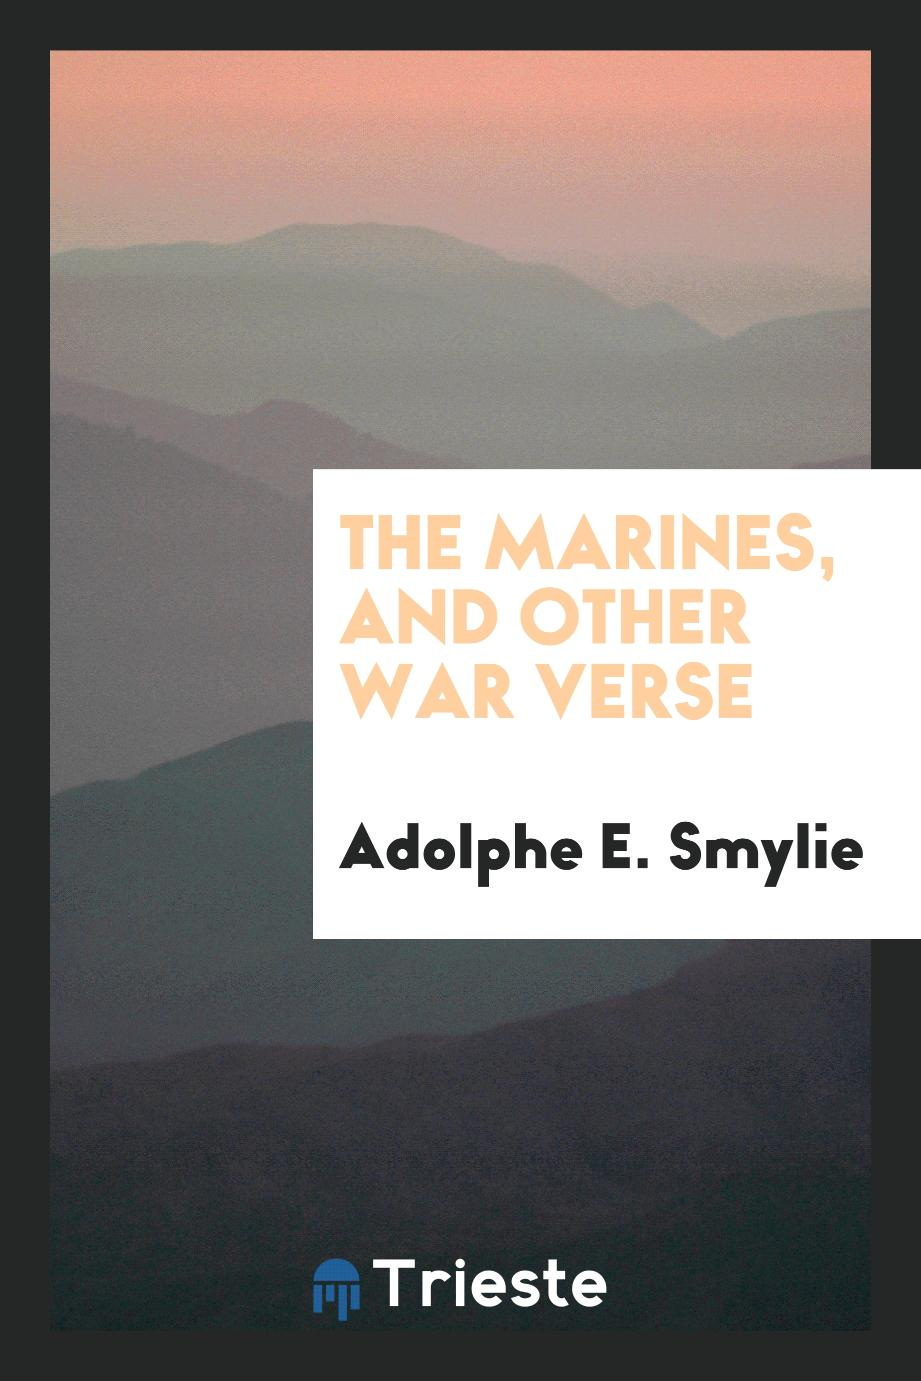 The Marines, and Other War Verse